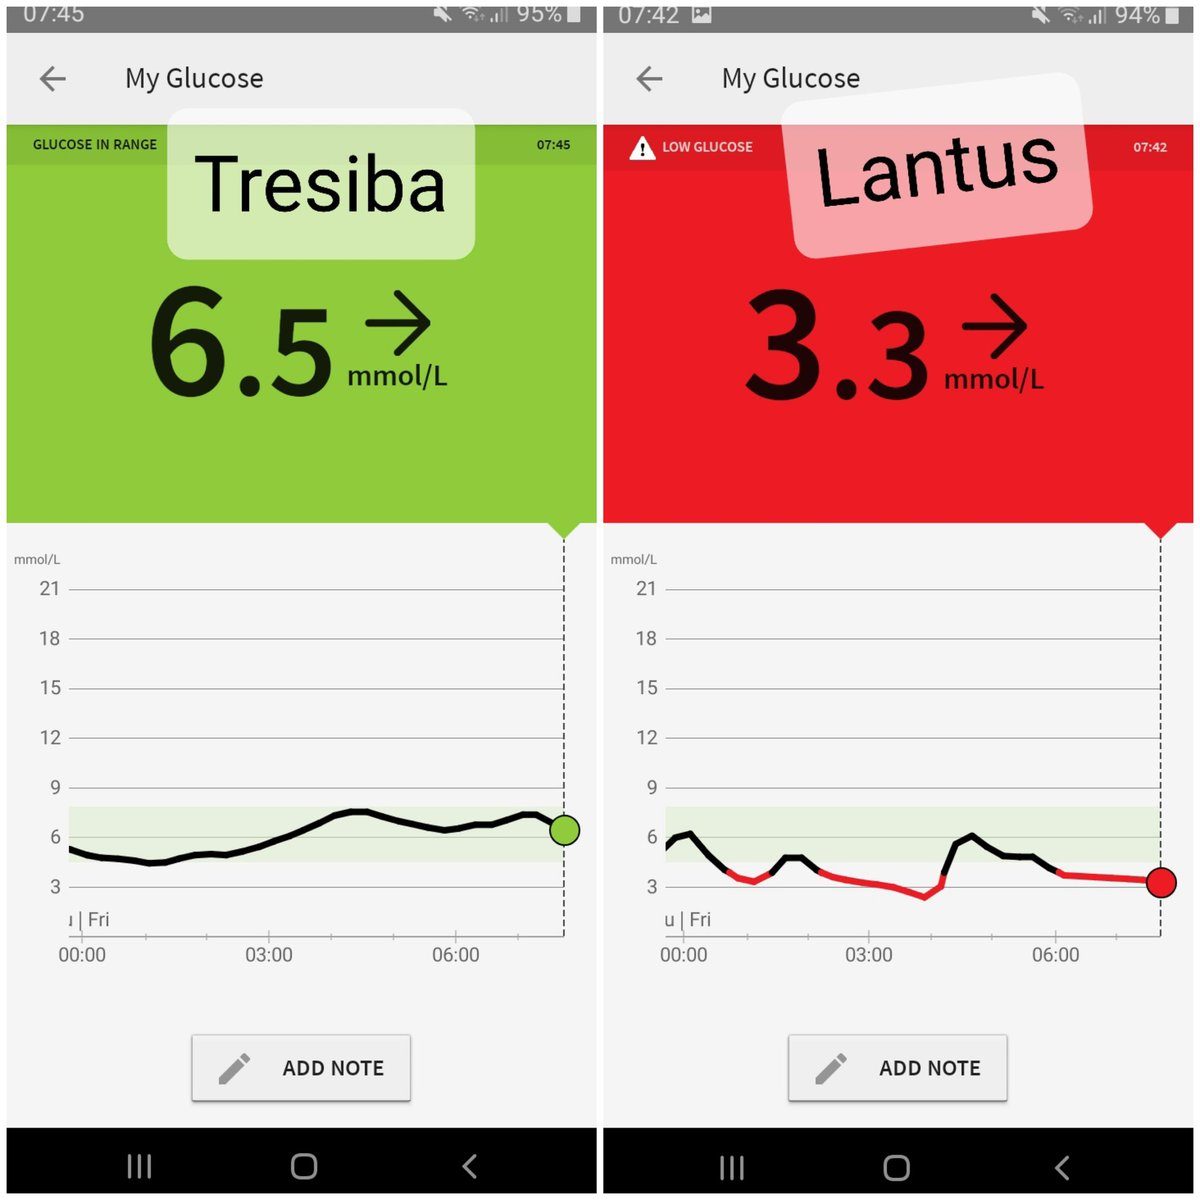 test Twitter Media - 14 days on #Tresiba. Very successful so far & very pleased with results. Feel so much better & less spikes during day too. Lantus wasn't working for me, I didn't think a different long acting would make any difference thankfully DSN thought differently! #diabetes #type1diabetes https://t.co/nN9v2UMuJL